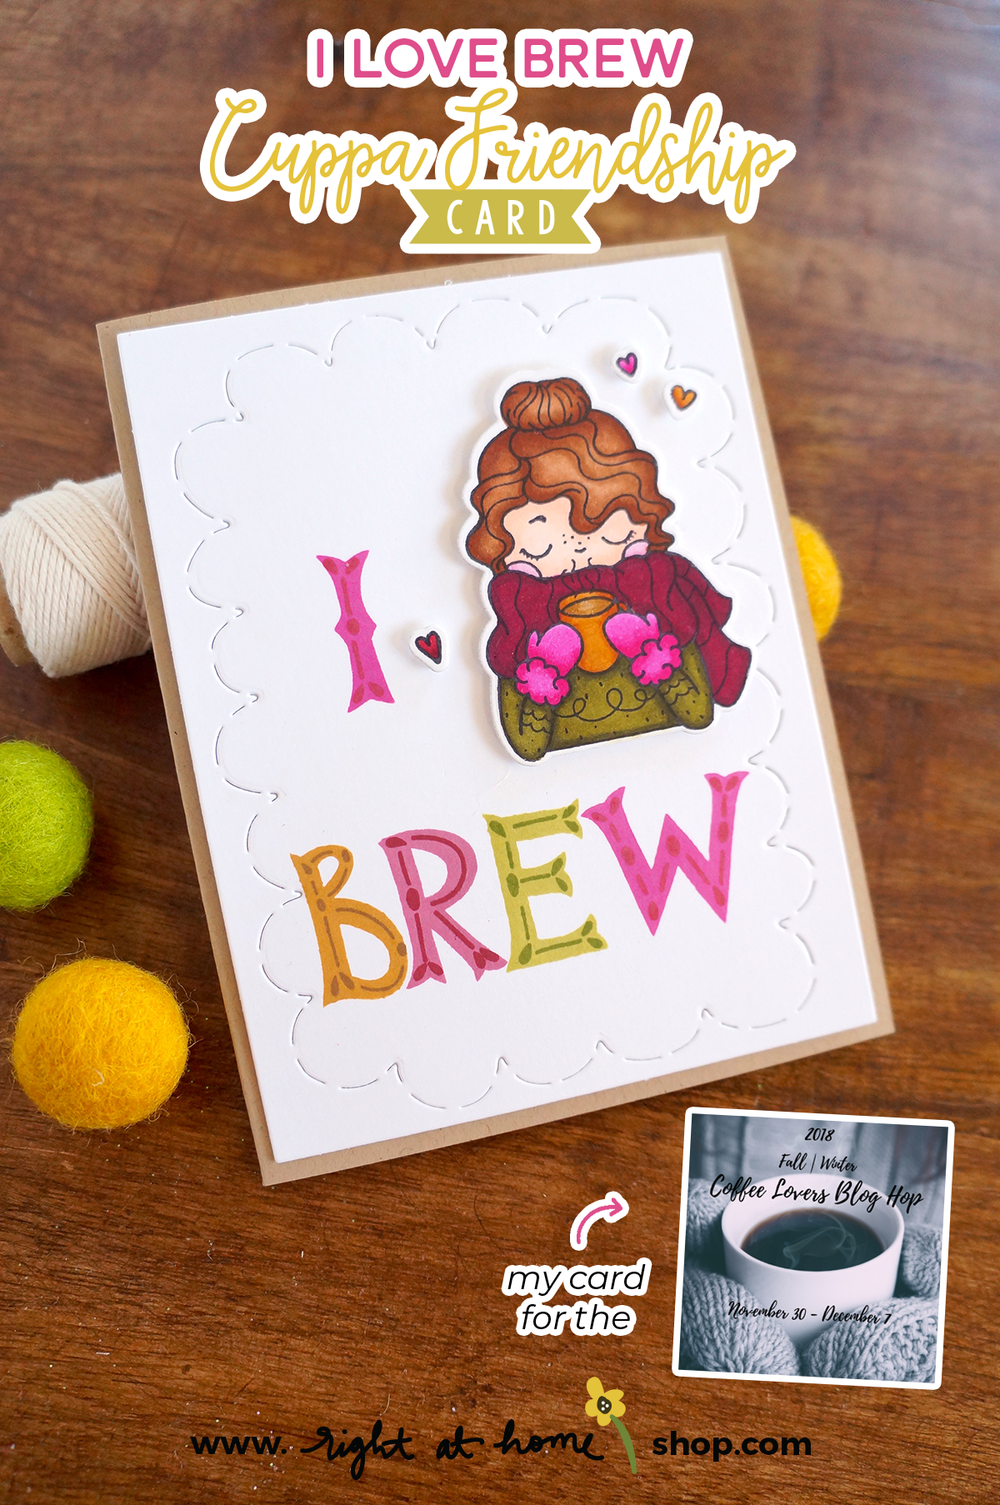 I Love Brew Cuppa Friendship Card for the 2018 Fall | Winter Coffee Lovers Blog Hop on www.rightathomeshop.com/blog